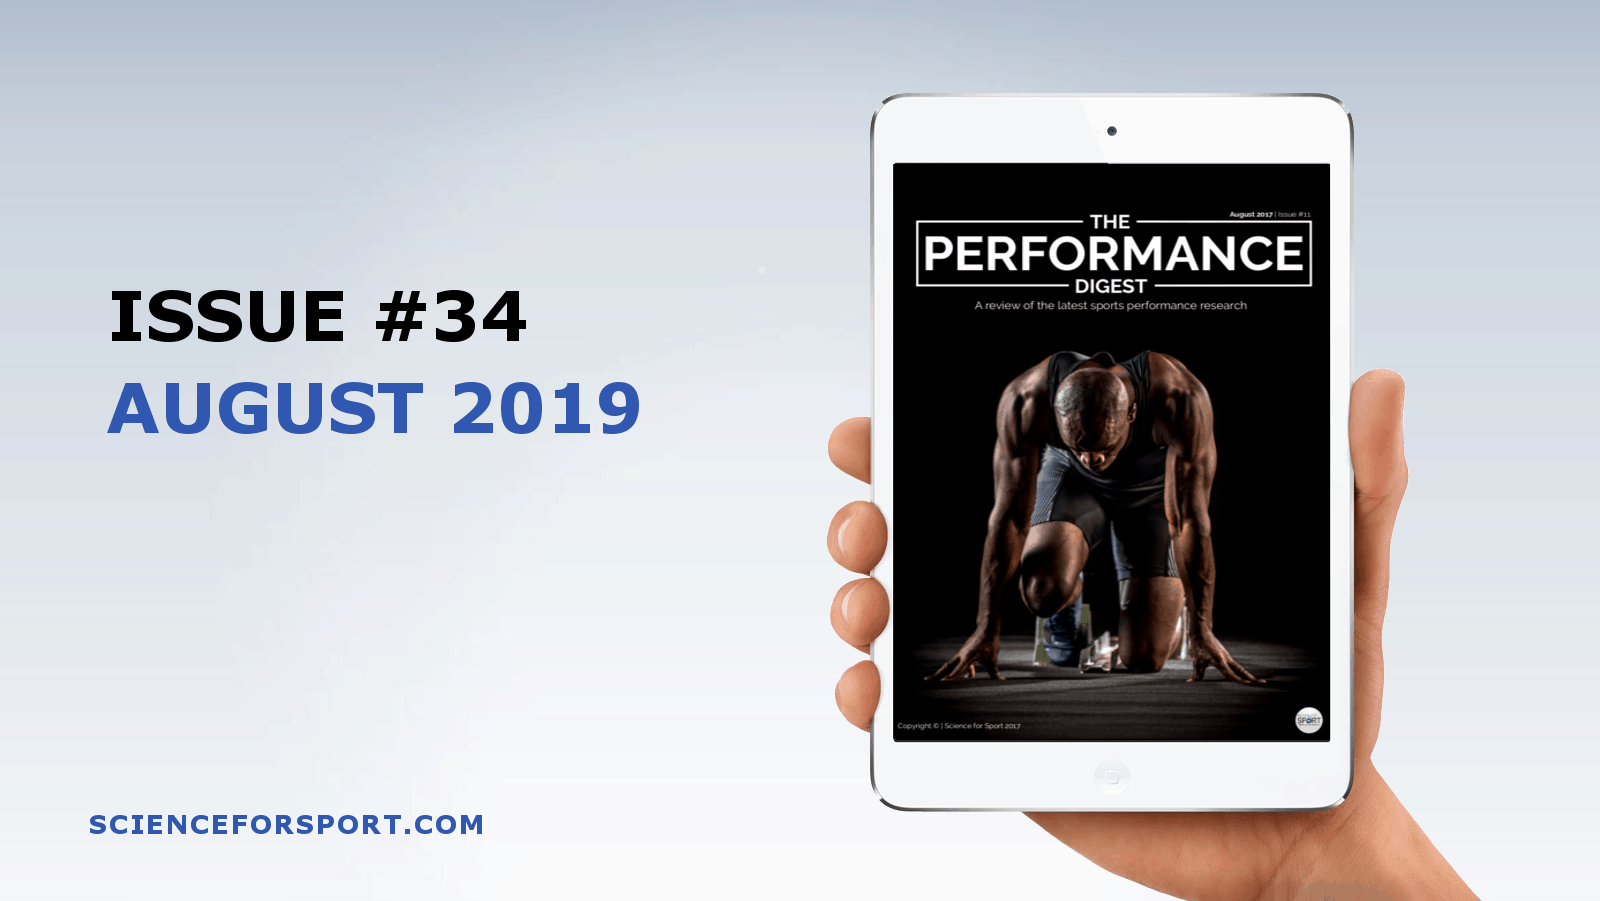 Performance Digest - August 19 (Issue #34)